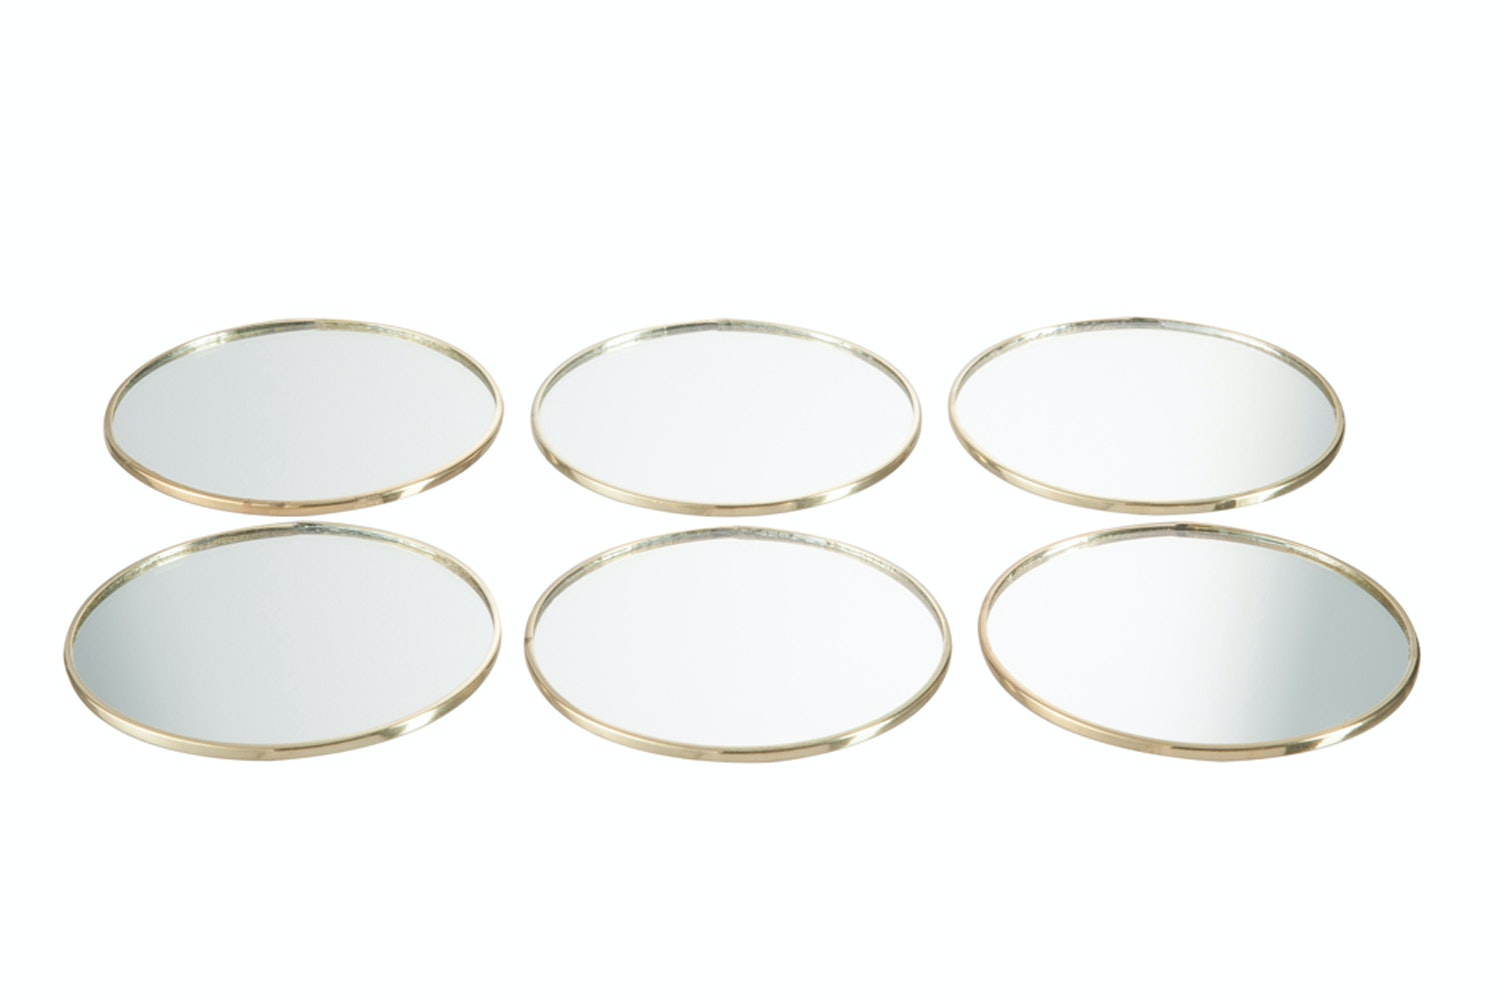 Assorted Glass Coasters In Round And Square Metal Frame